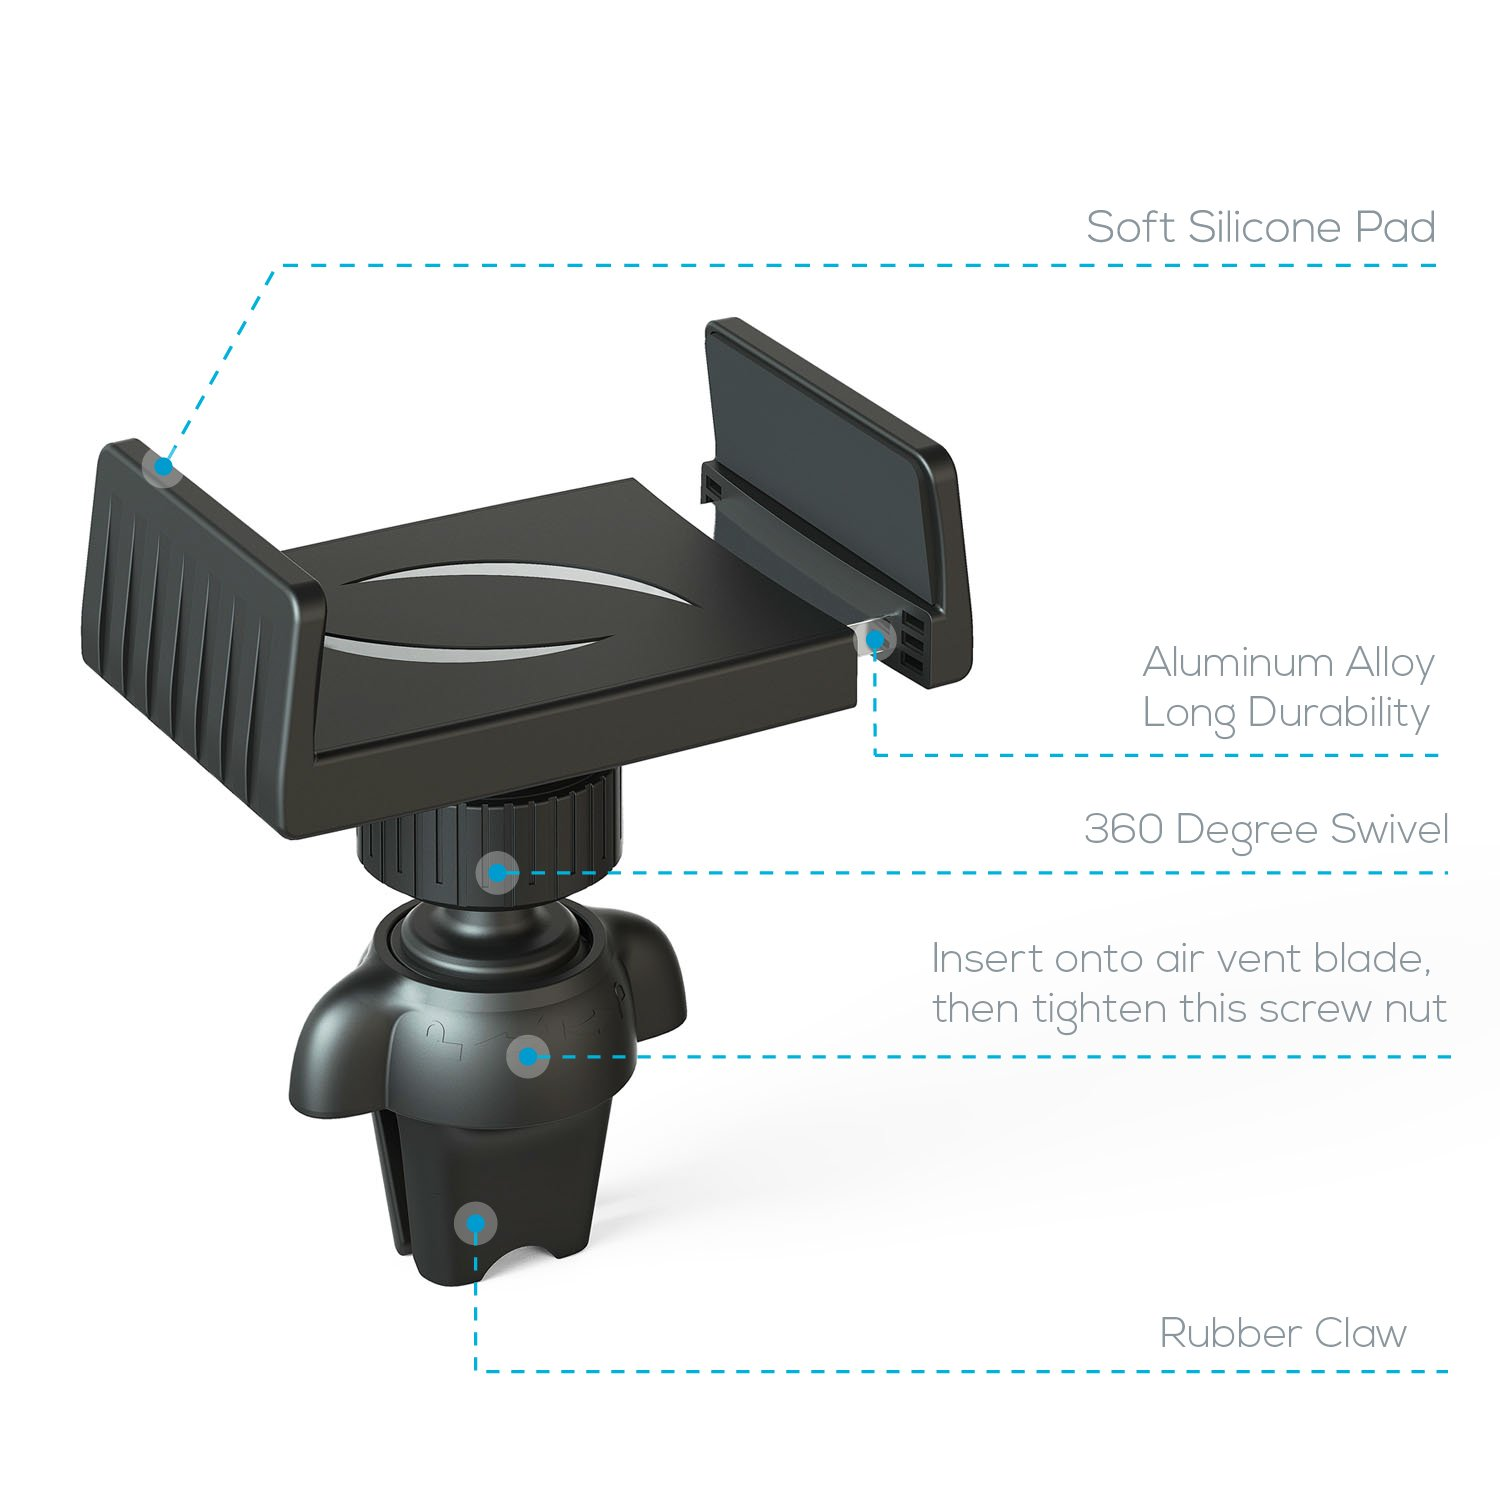 APPS2Car Sturdy Air Vent Car Phone Mount w//Twist Screw Nut Adjustable Mount Base Compatible with iPhoneXs Max 8//8Plus 7//7Plus 6s Plus Samsung Galaxy S9 S8 S6//S7 Edge S5 Note 9 8 5 A9 LG G5 Xperia ZX2 Wiiki-Tech 4333126641